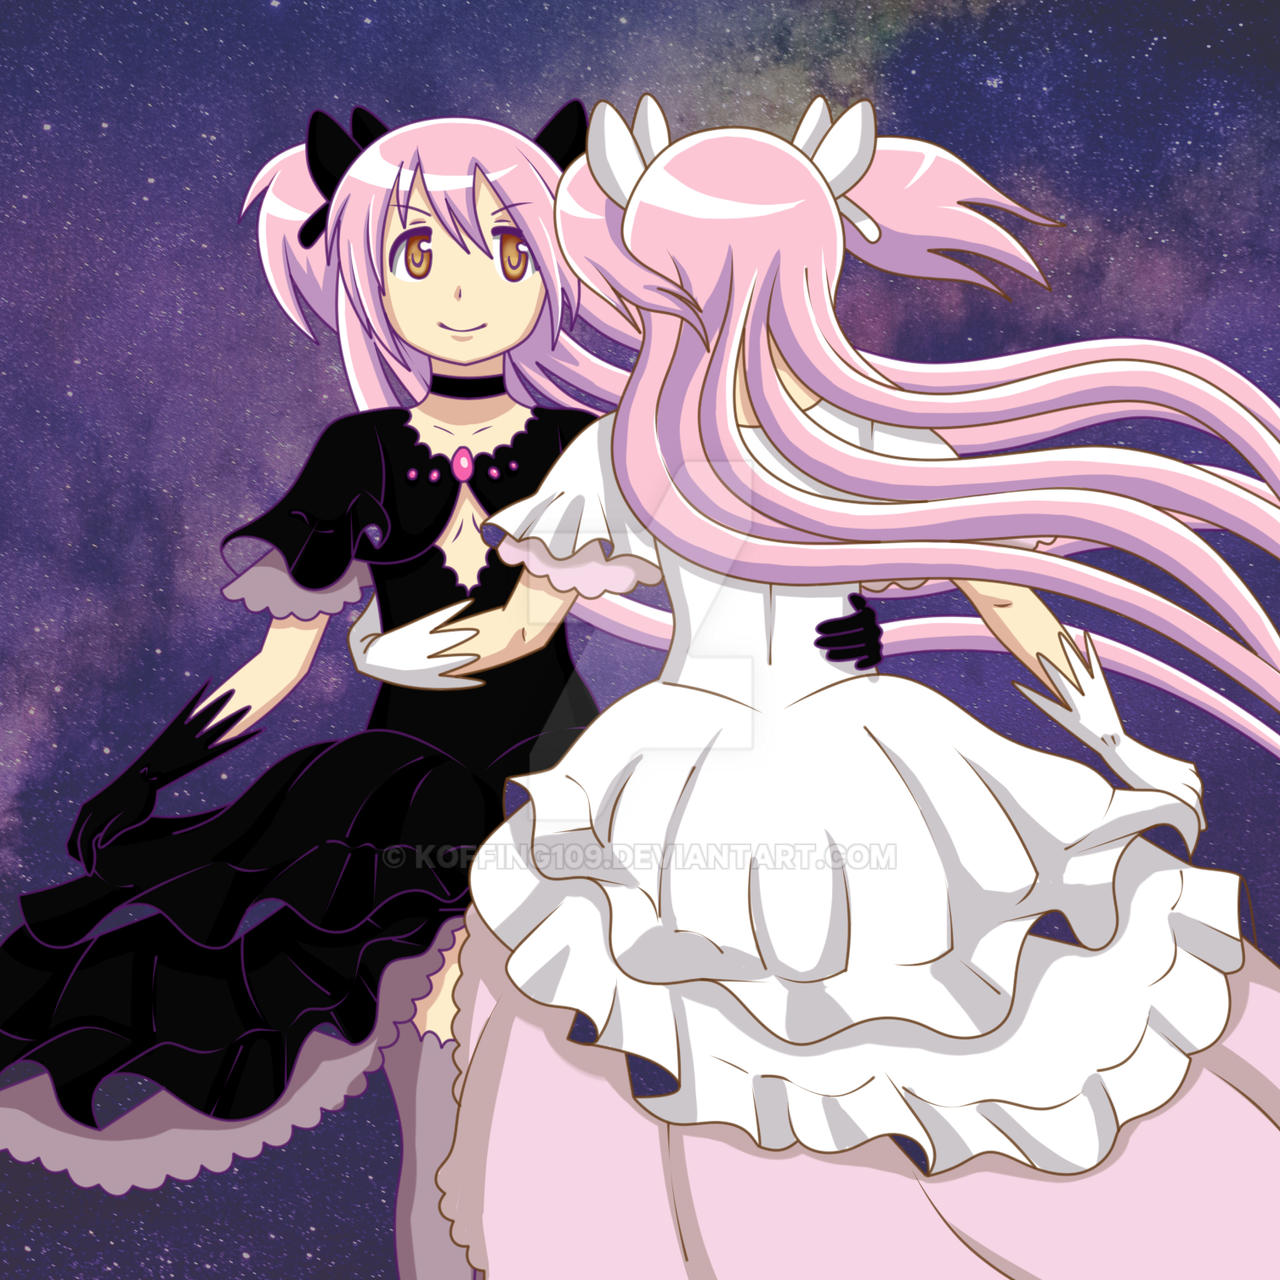 Anime 2019 March: Magical March 2019 #14 #15 Madoka By Koffing109 On DeviantArt